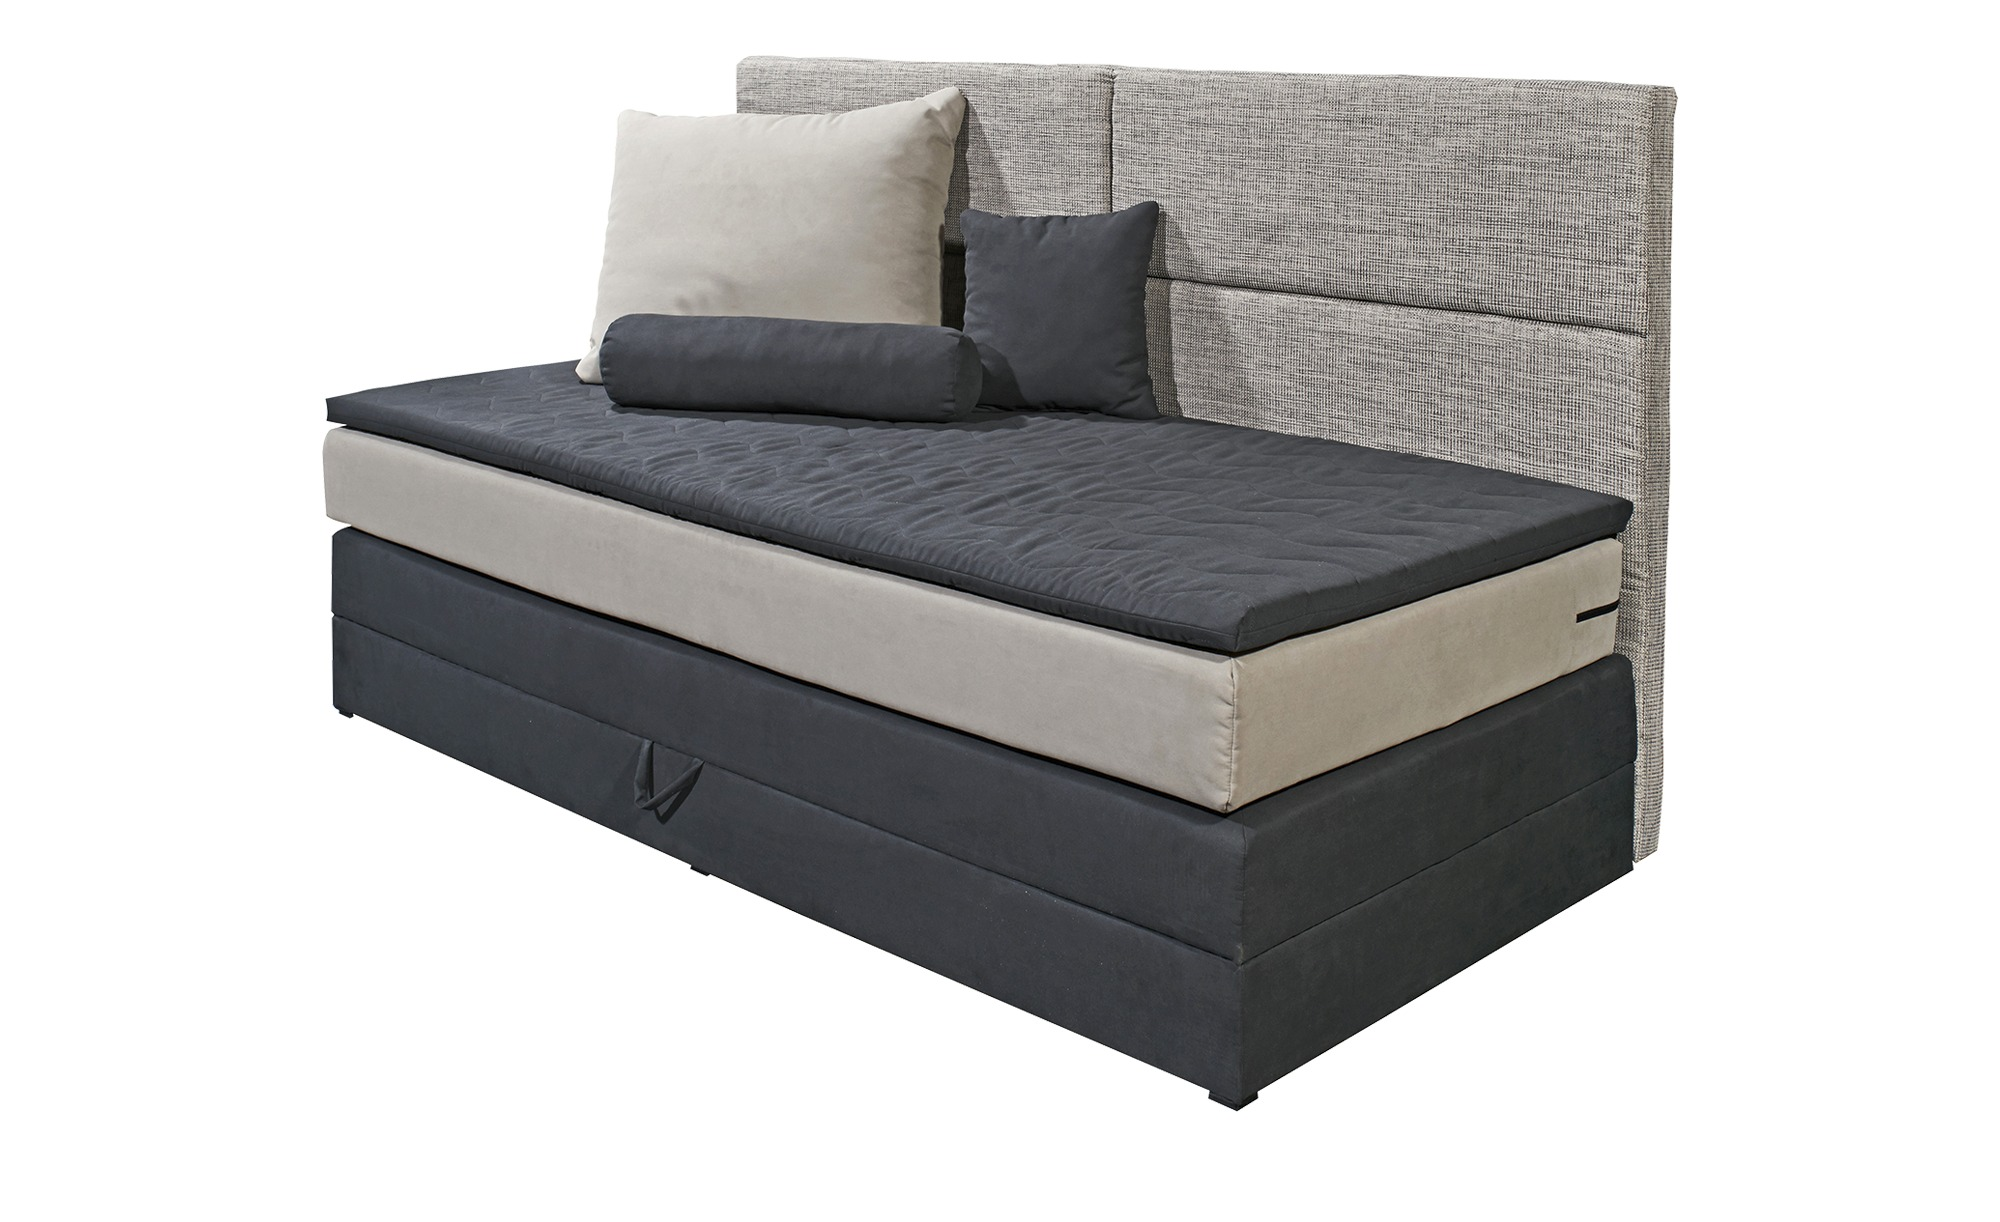 einzel boxspringbett grau mit bettkasten chill breite 98 cm h he 113 cm schwarz online kaufen. Black Bedroom Furniture Sets. Home Design Ideas